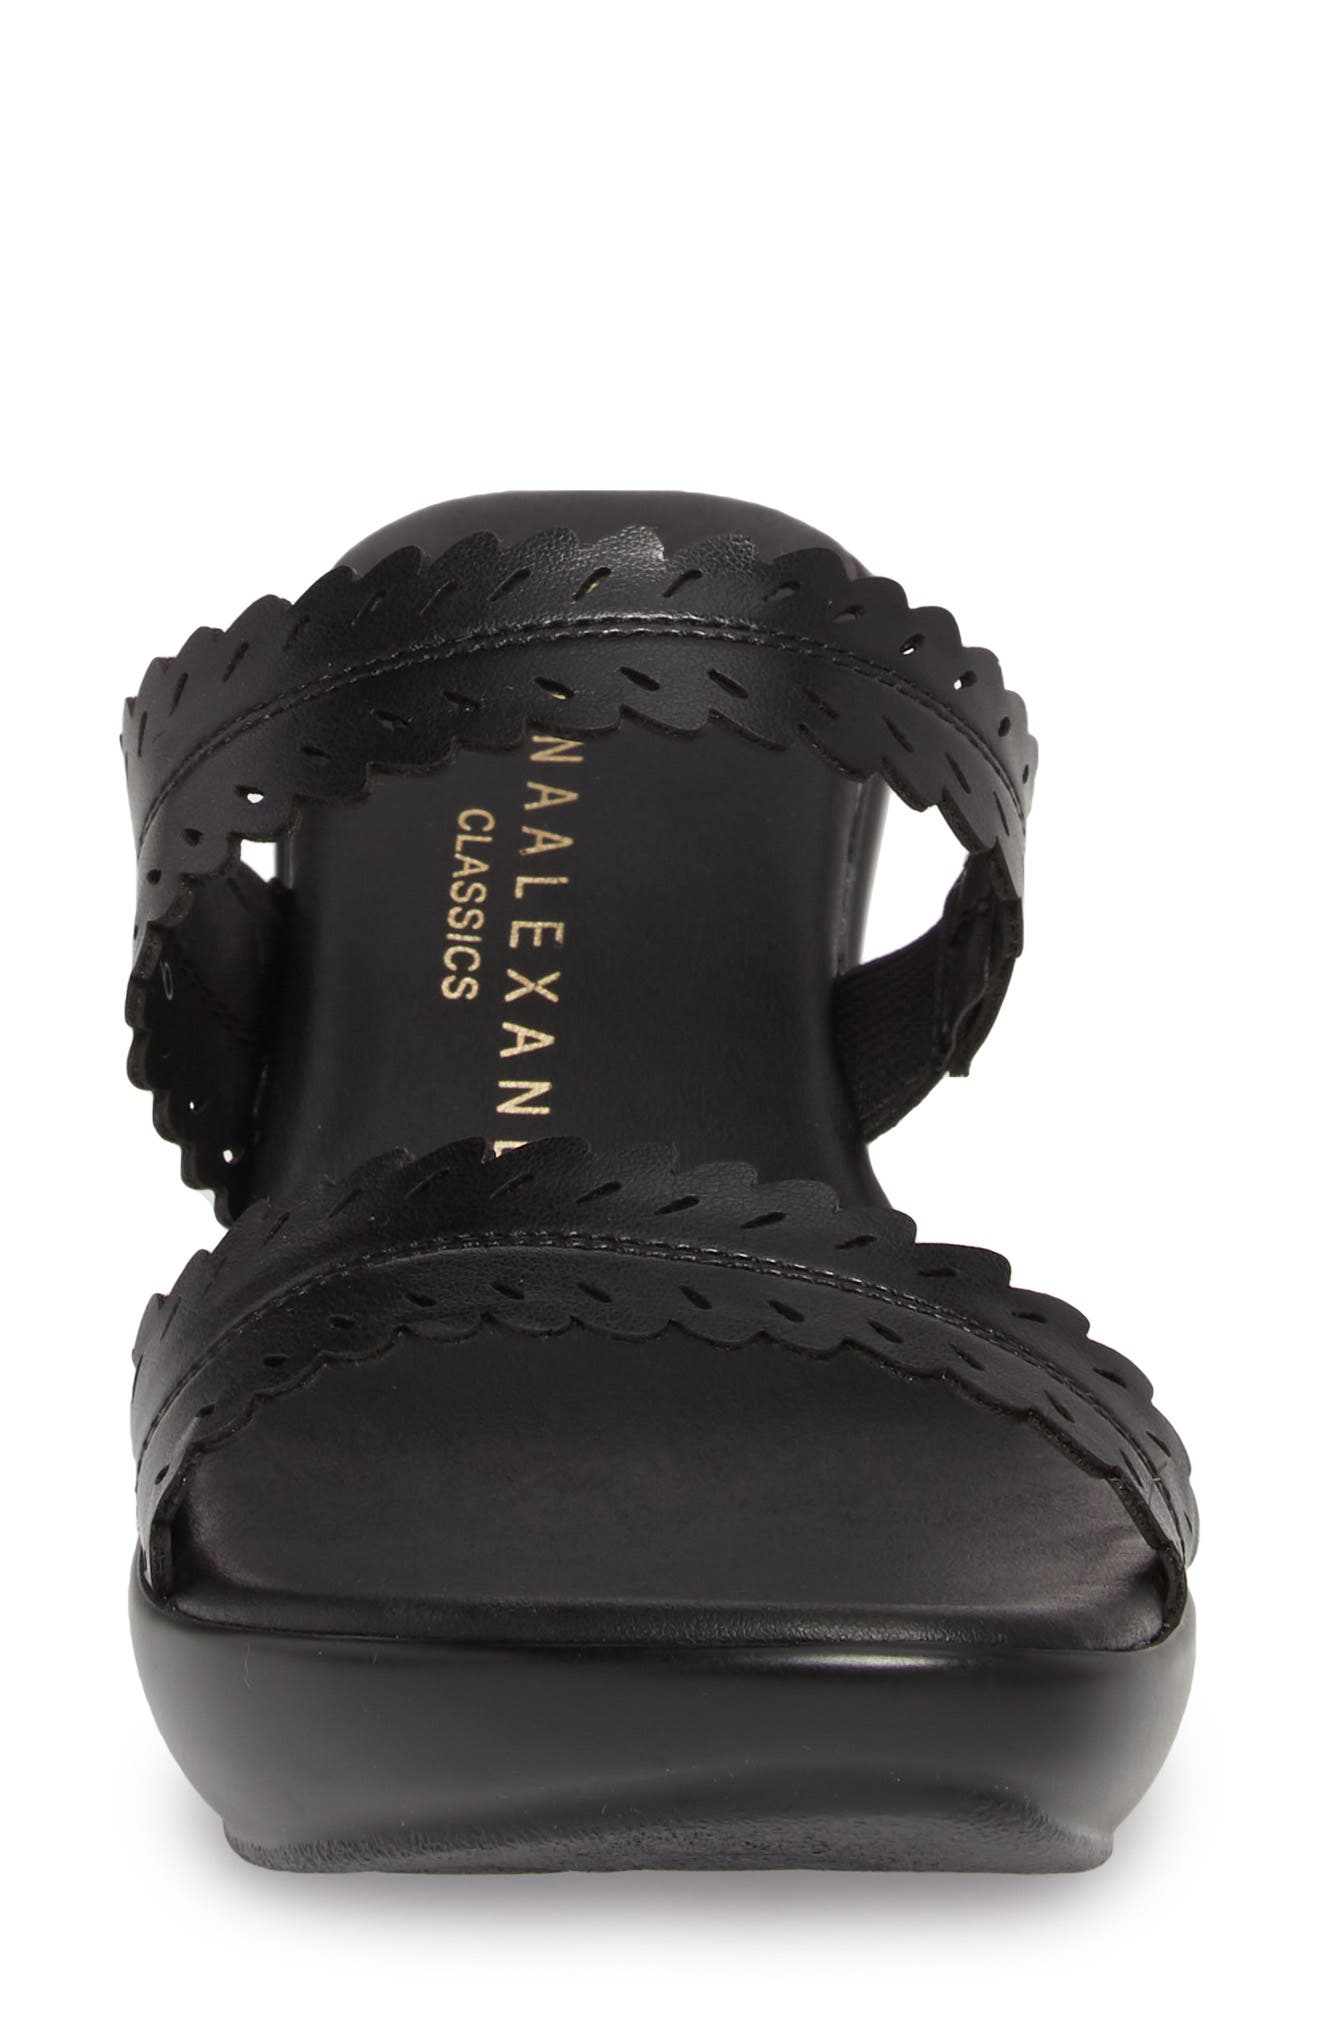 Pouty Wedge Sandal,                             Alternate thumbnail 6, color,                             Black Fabric